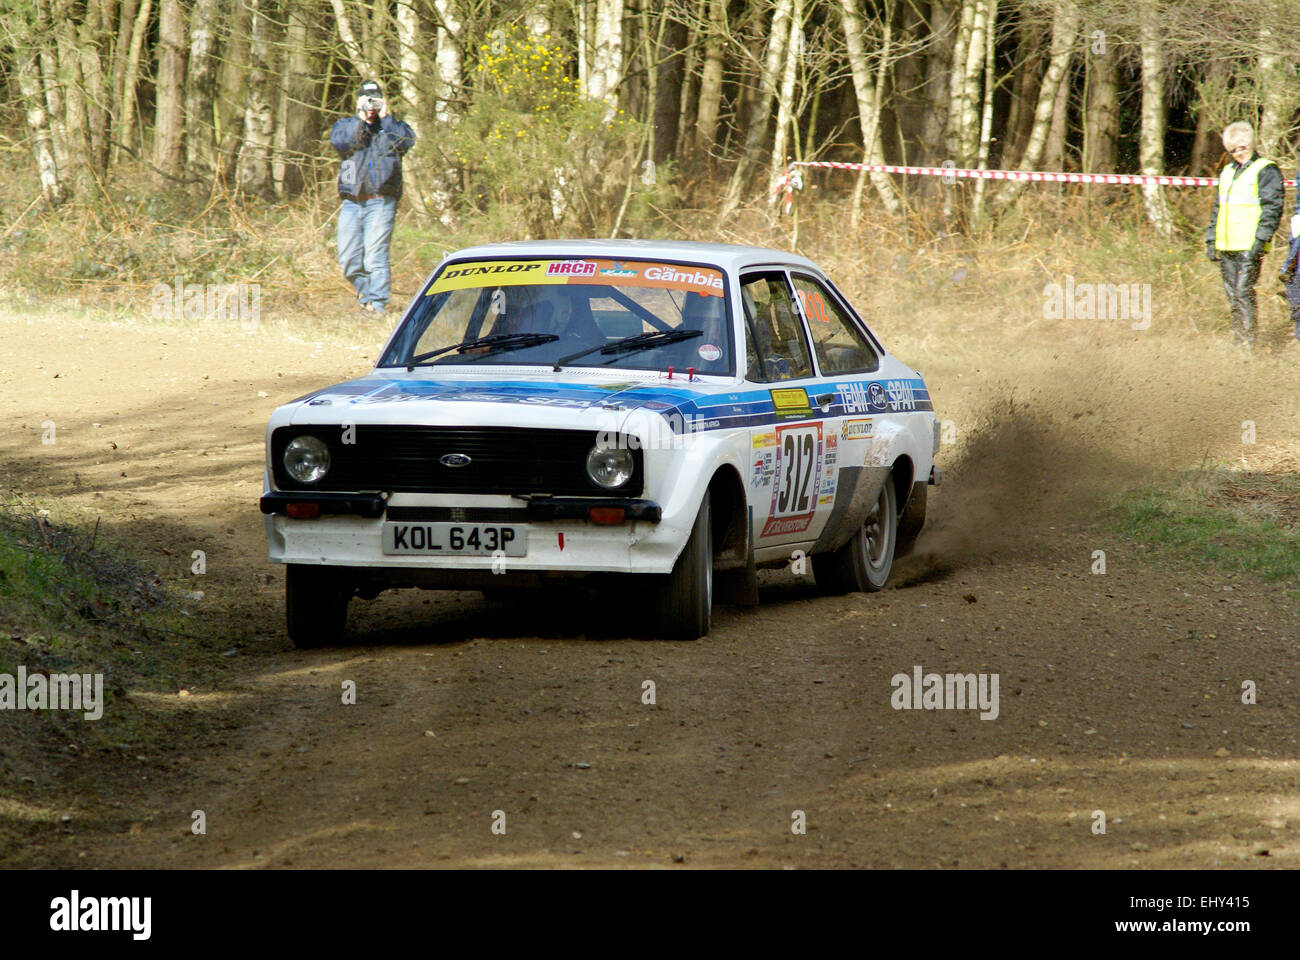 Ford Escort MK2 Rally Car Stock Photo: 79886497 - Alamy